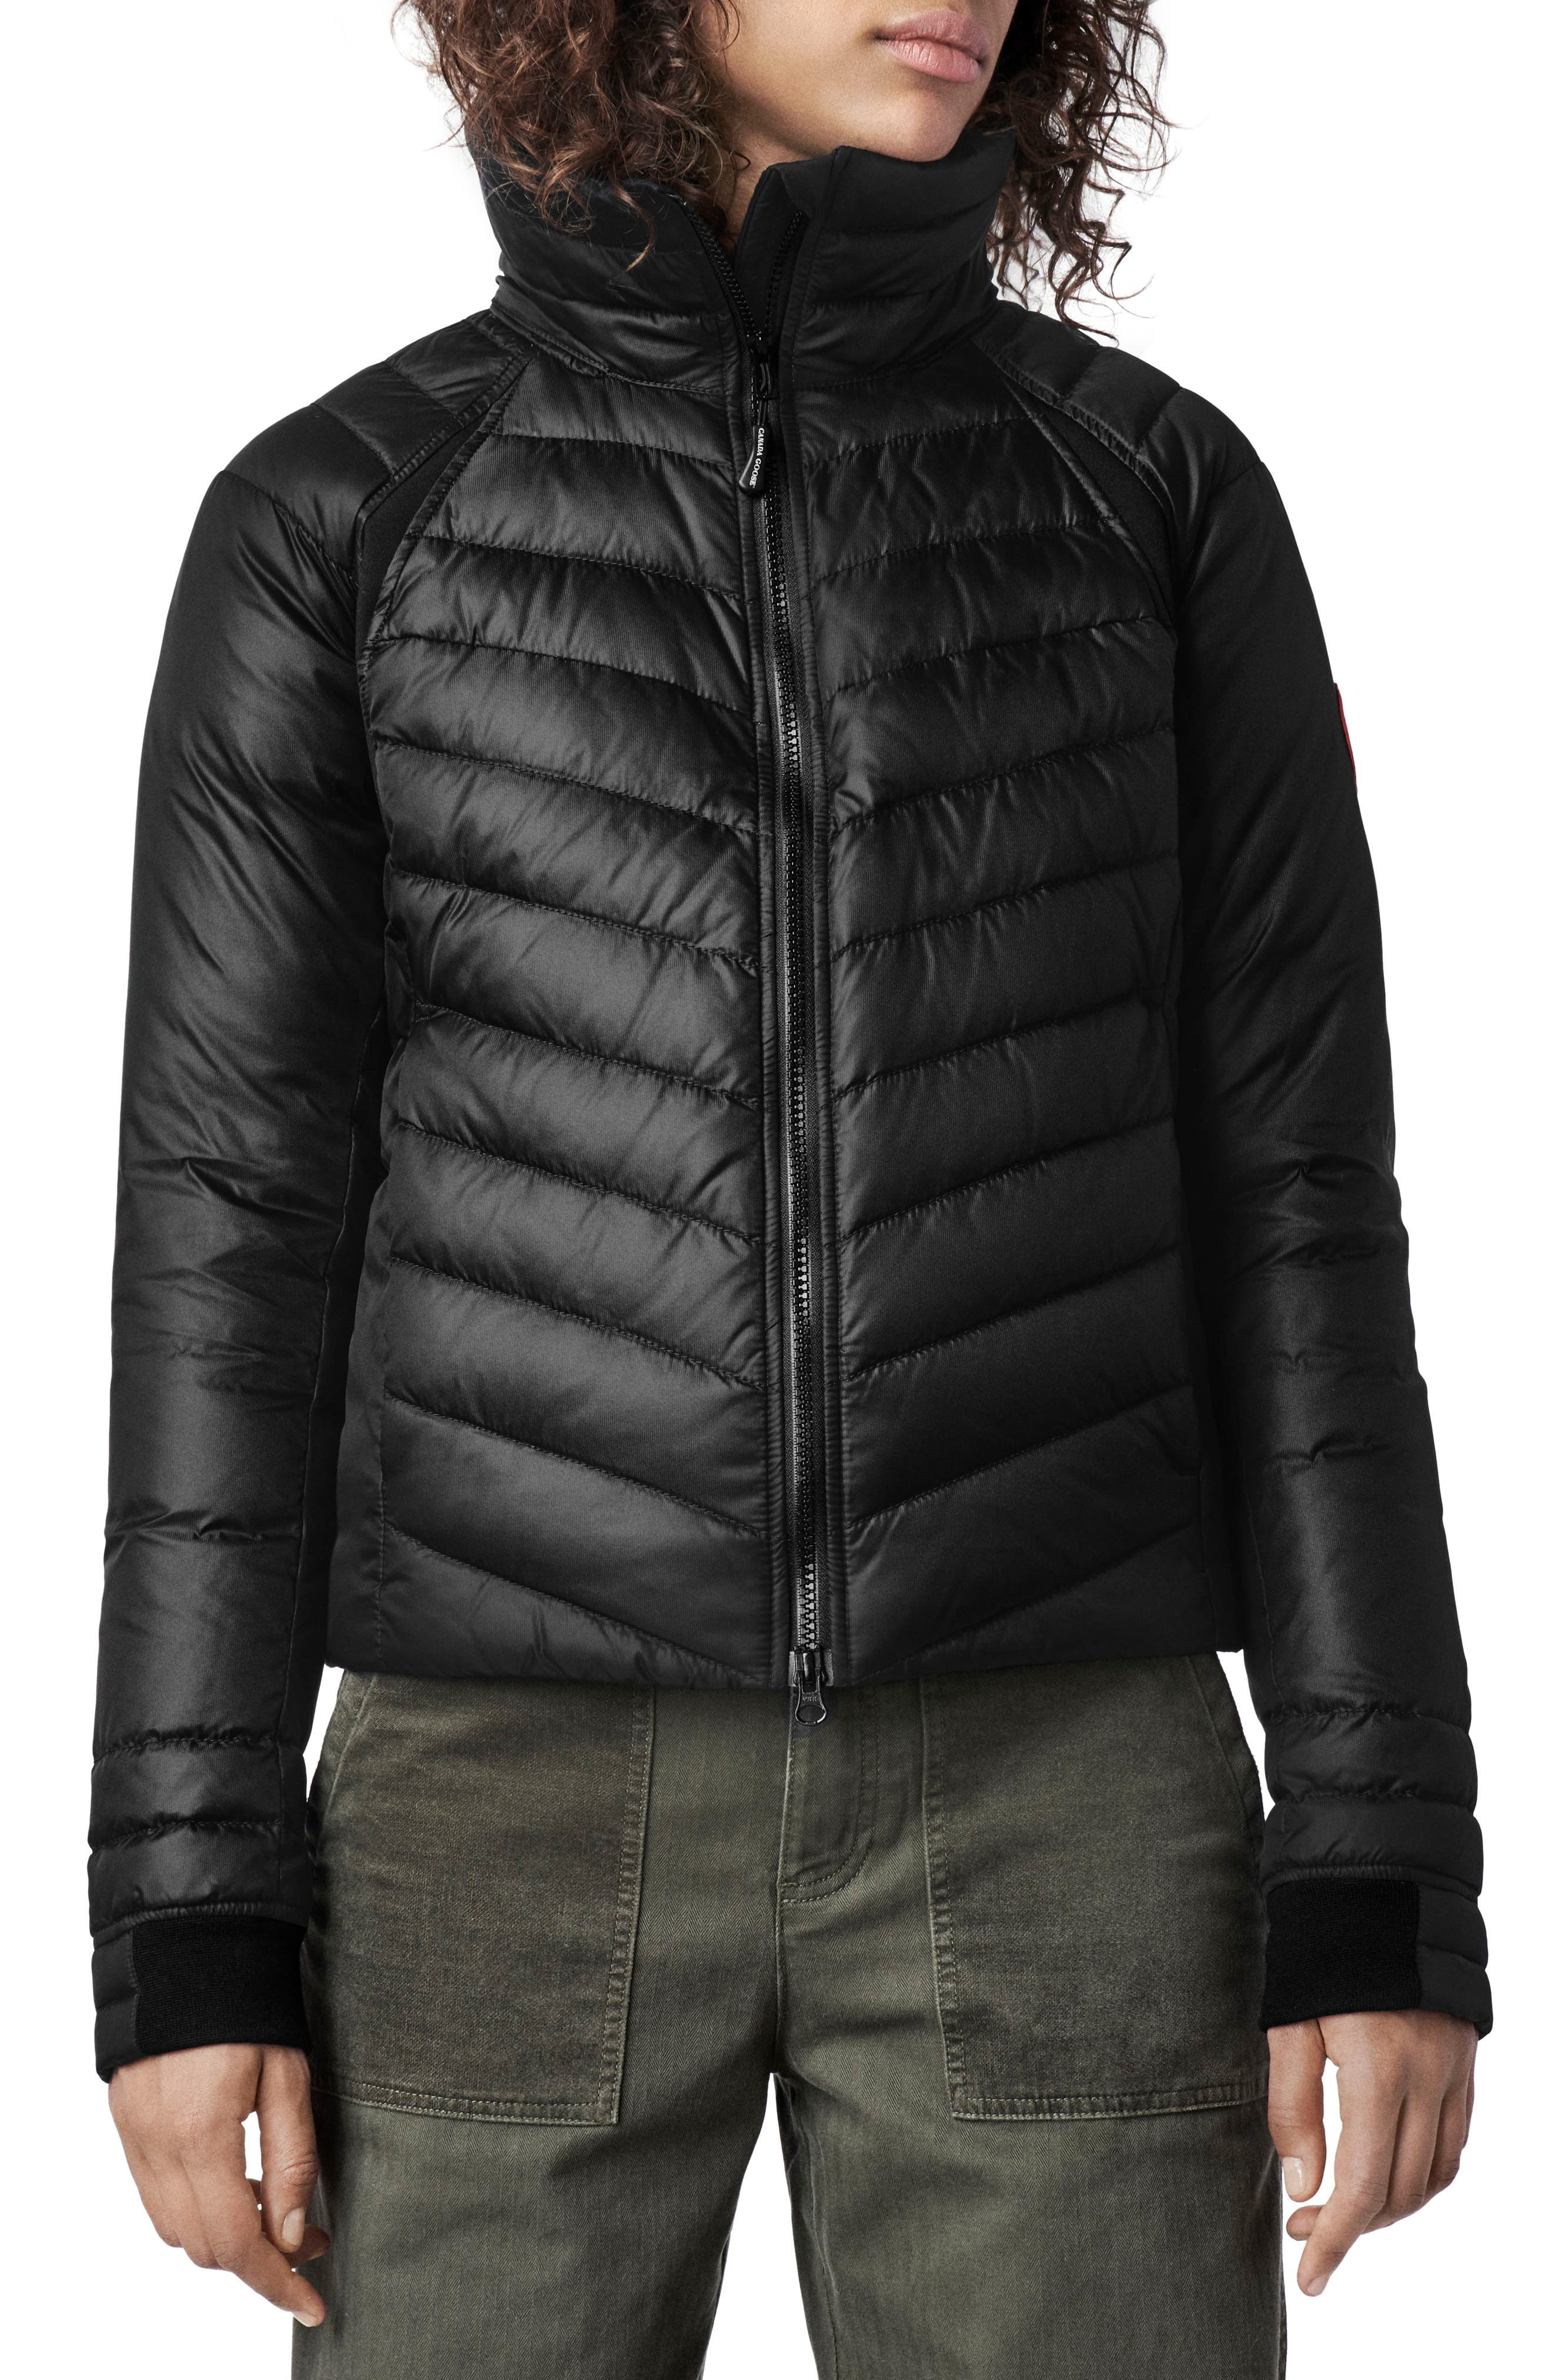 Canada Goose Hybridge Base Water Resistant 800 Fill Power Down Insulated Jacket, (0) - Black